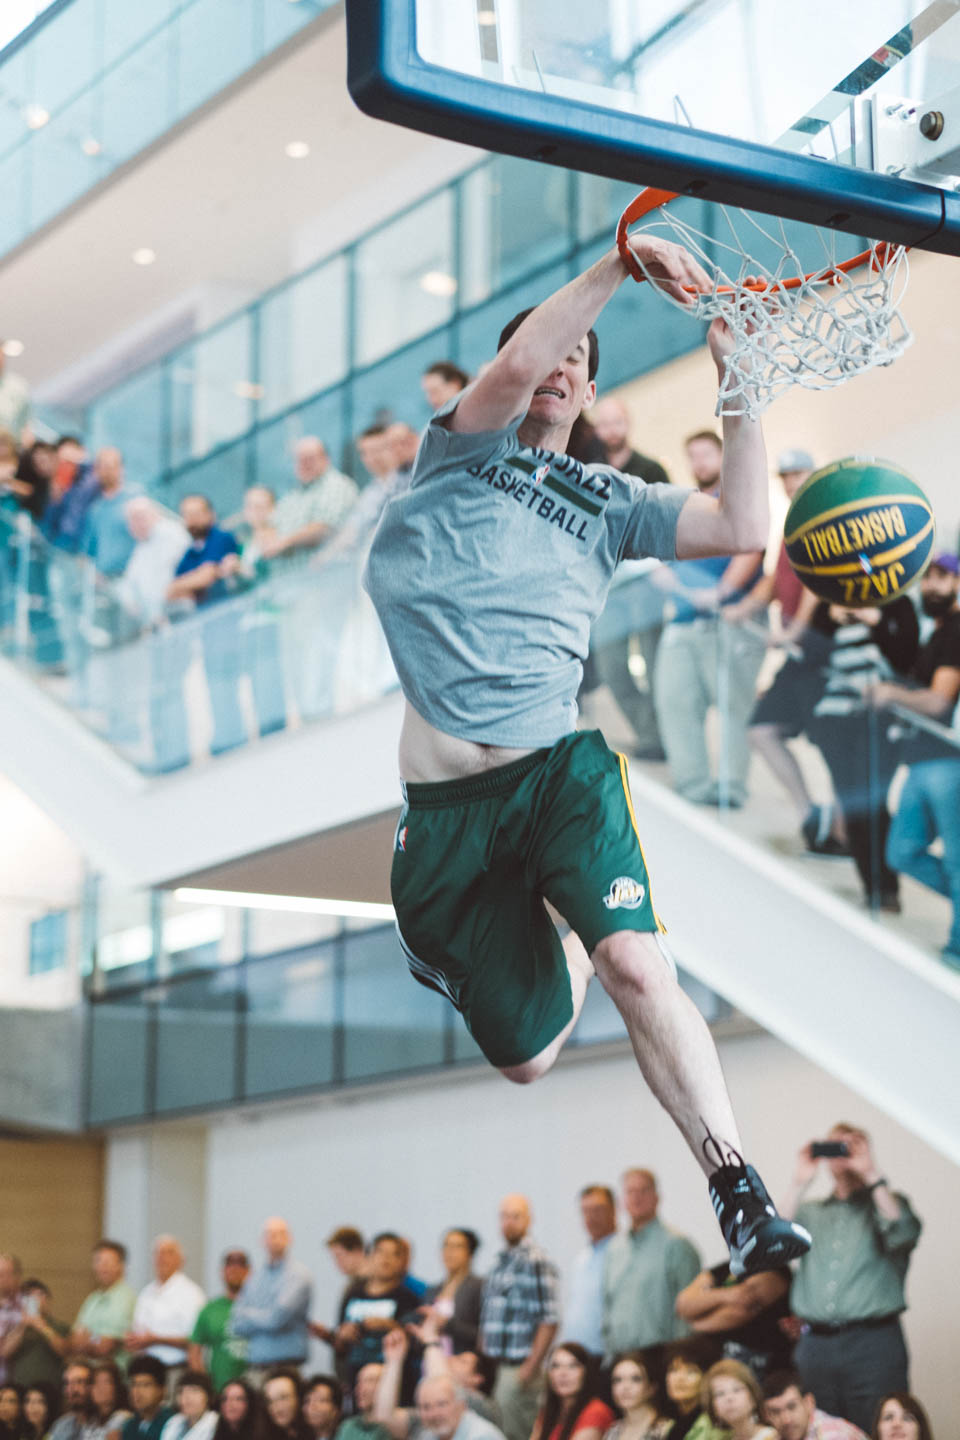 Dunk Team performs for a company in Provo